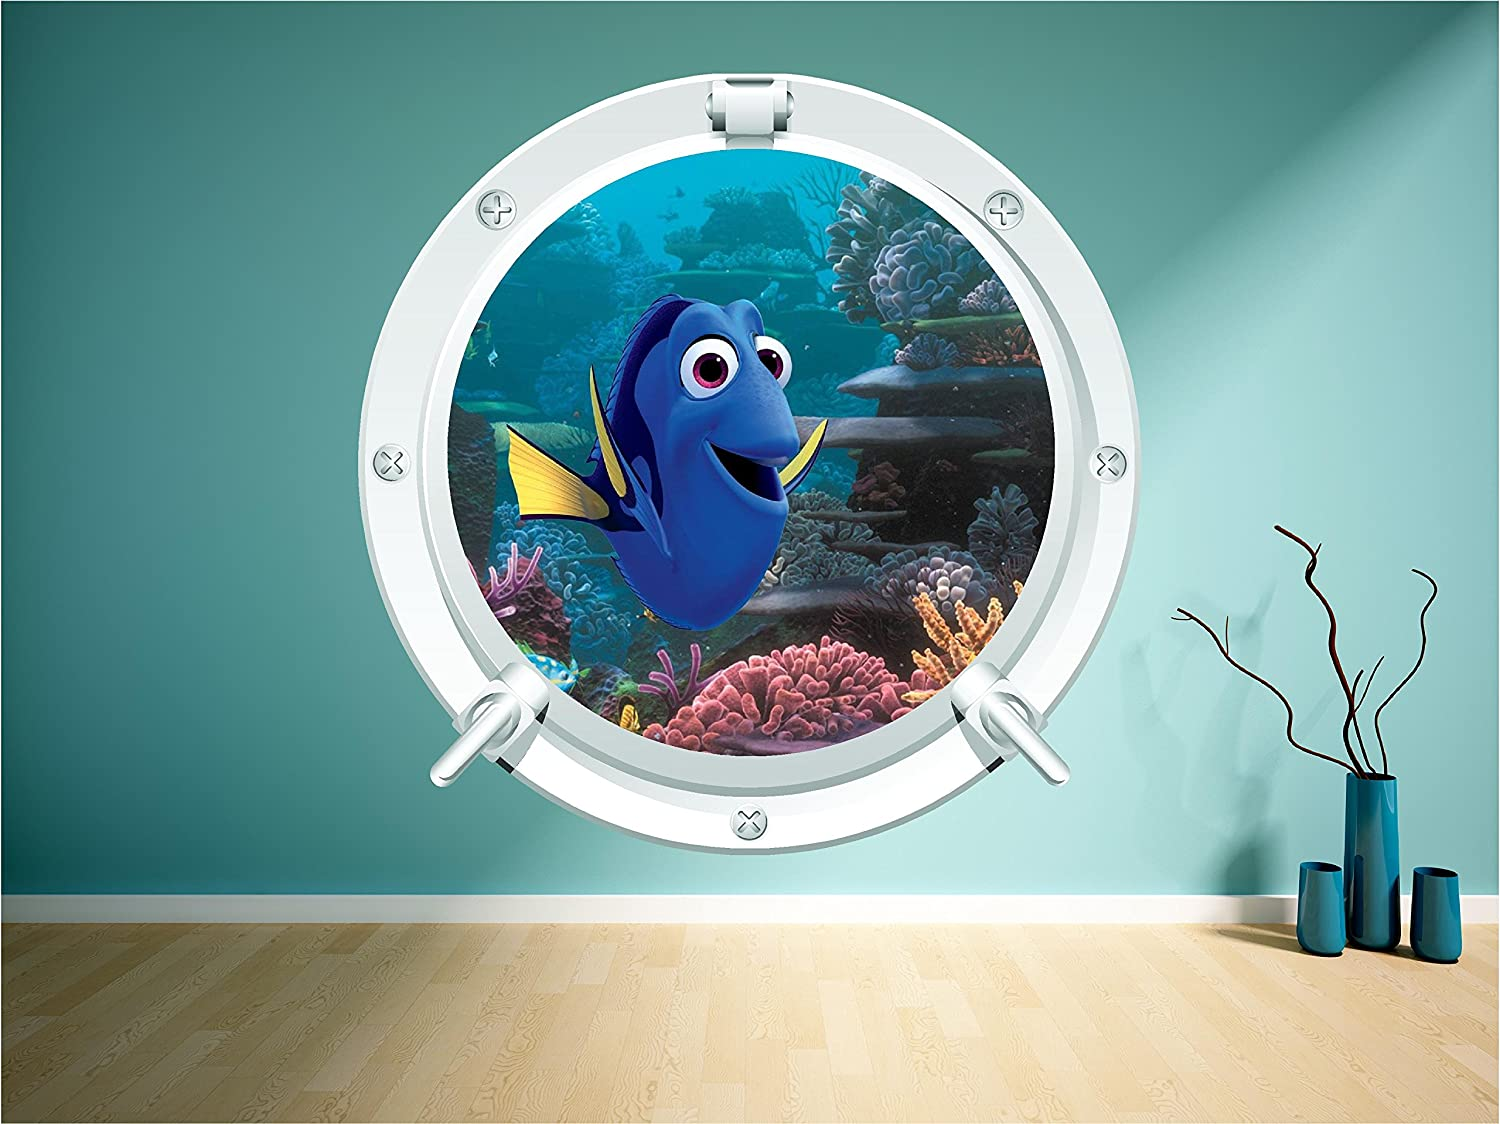 Finding Dory Porthole Nemo Movie Sea Wall Art Sticker Decal Kids Print  Mural (Large 60cm X 60cm): Amazon.co.uk: Kitchen U0026 Home Part 72